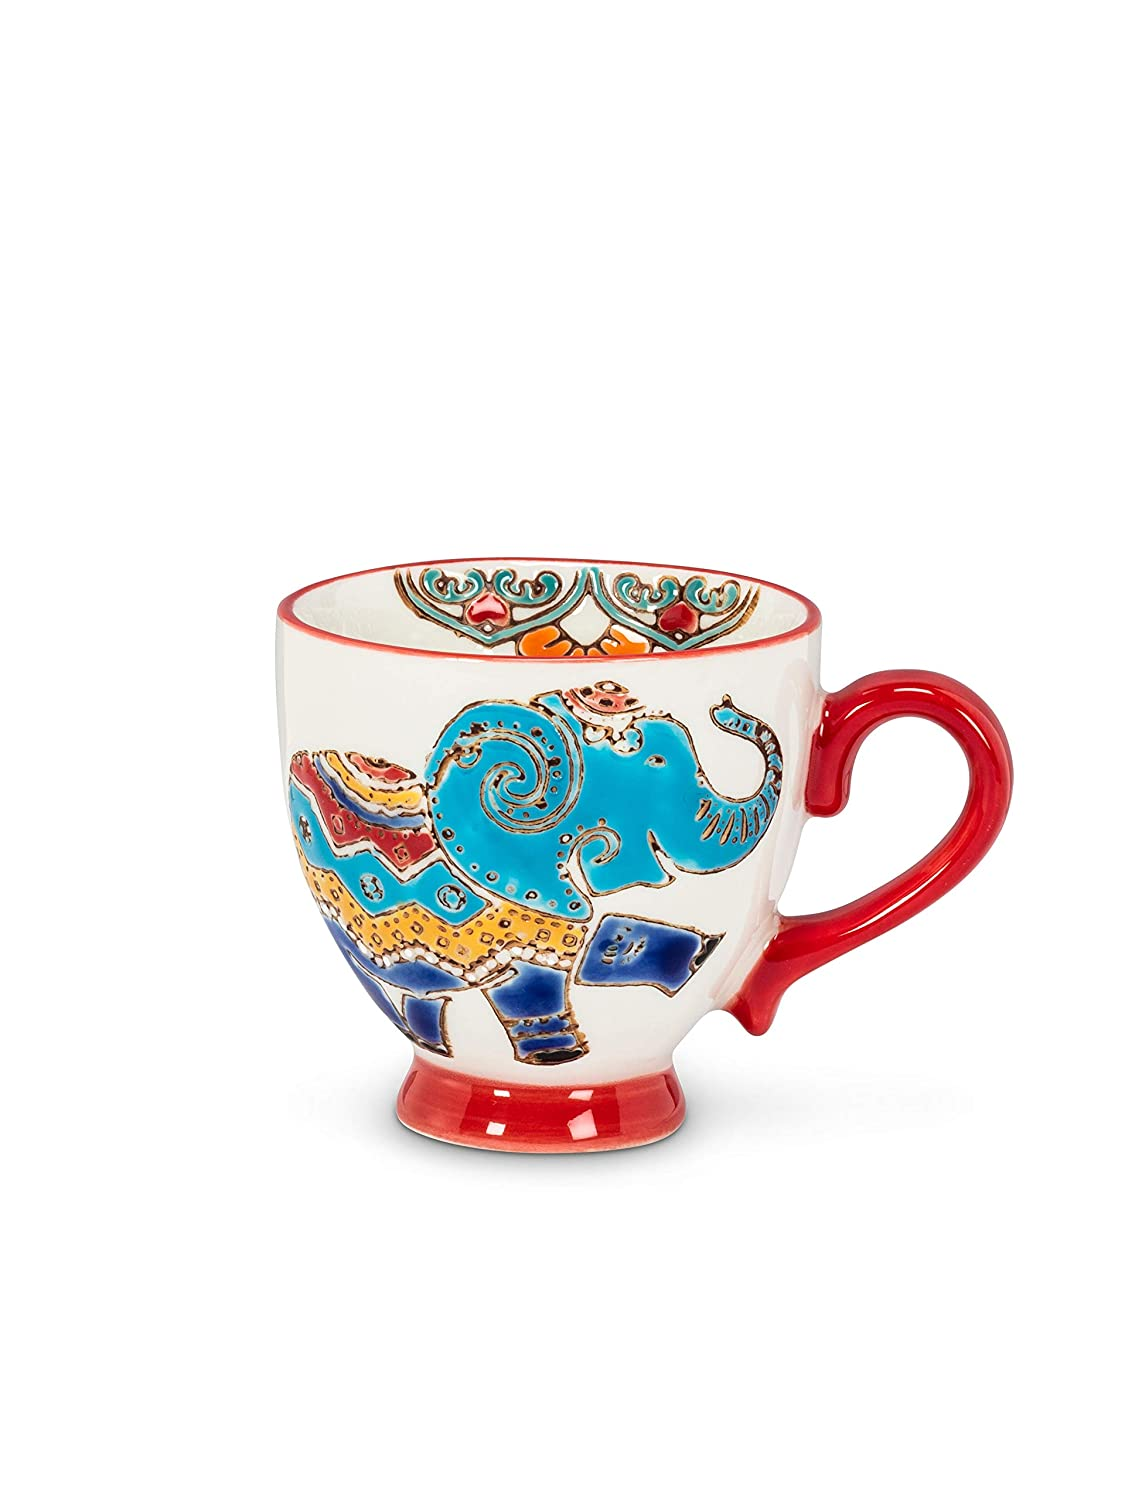 Abbott Collection 27-CHINTZ-ESP-14 Sm Elephant Handled Cup-2.25 D(3oz), 2.25 inches in Diameter, Multi